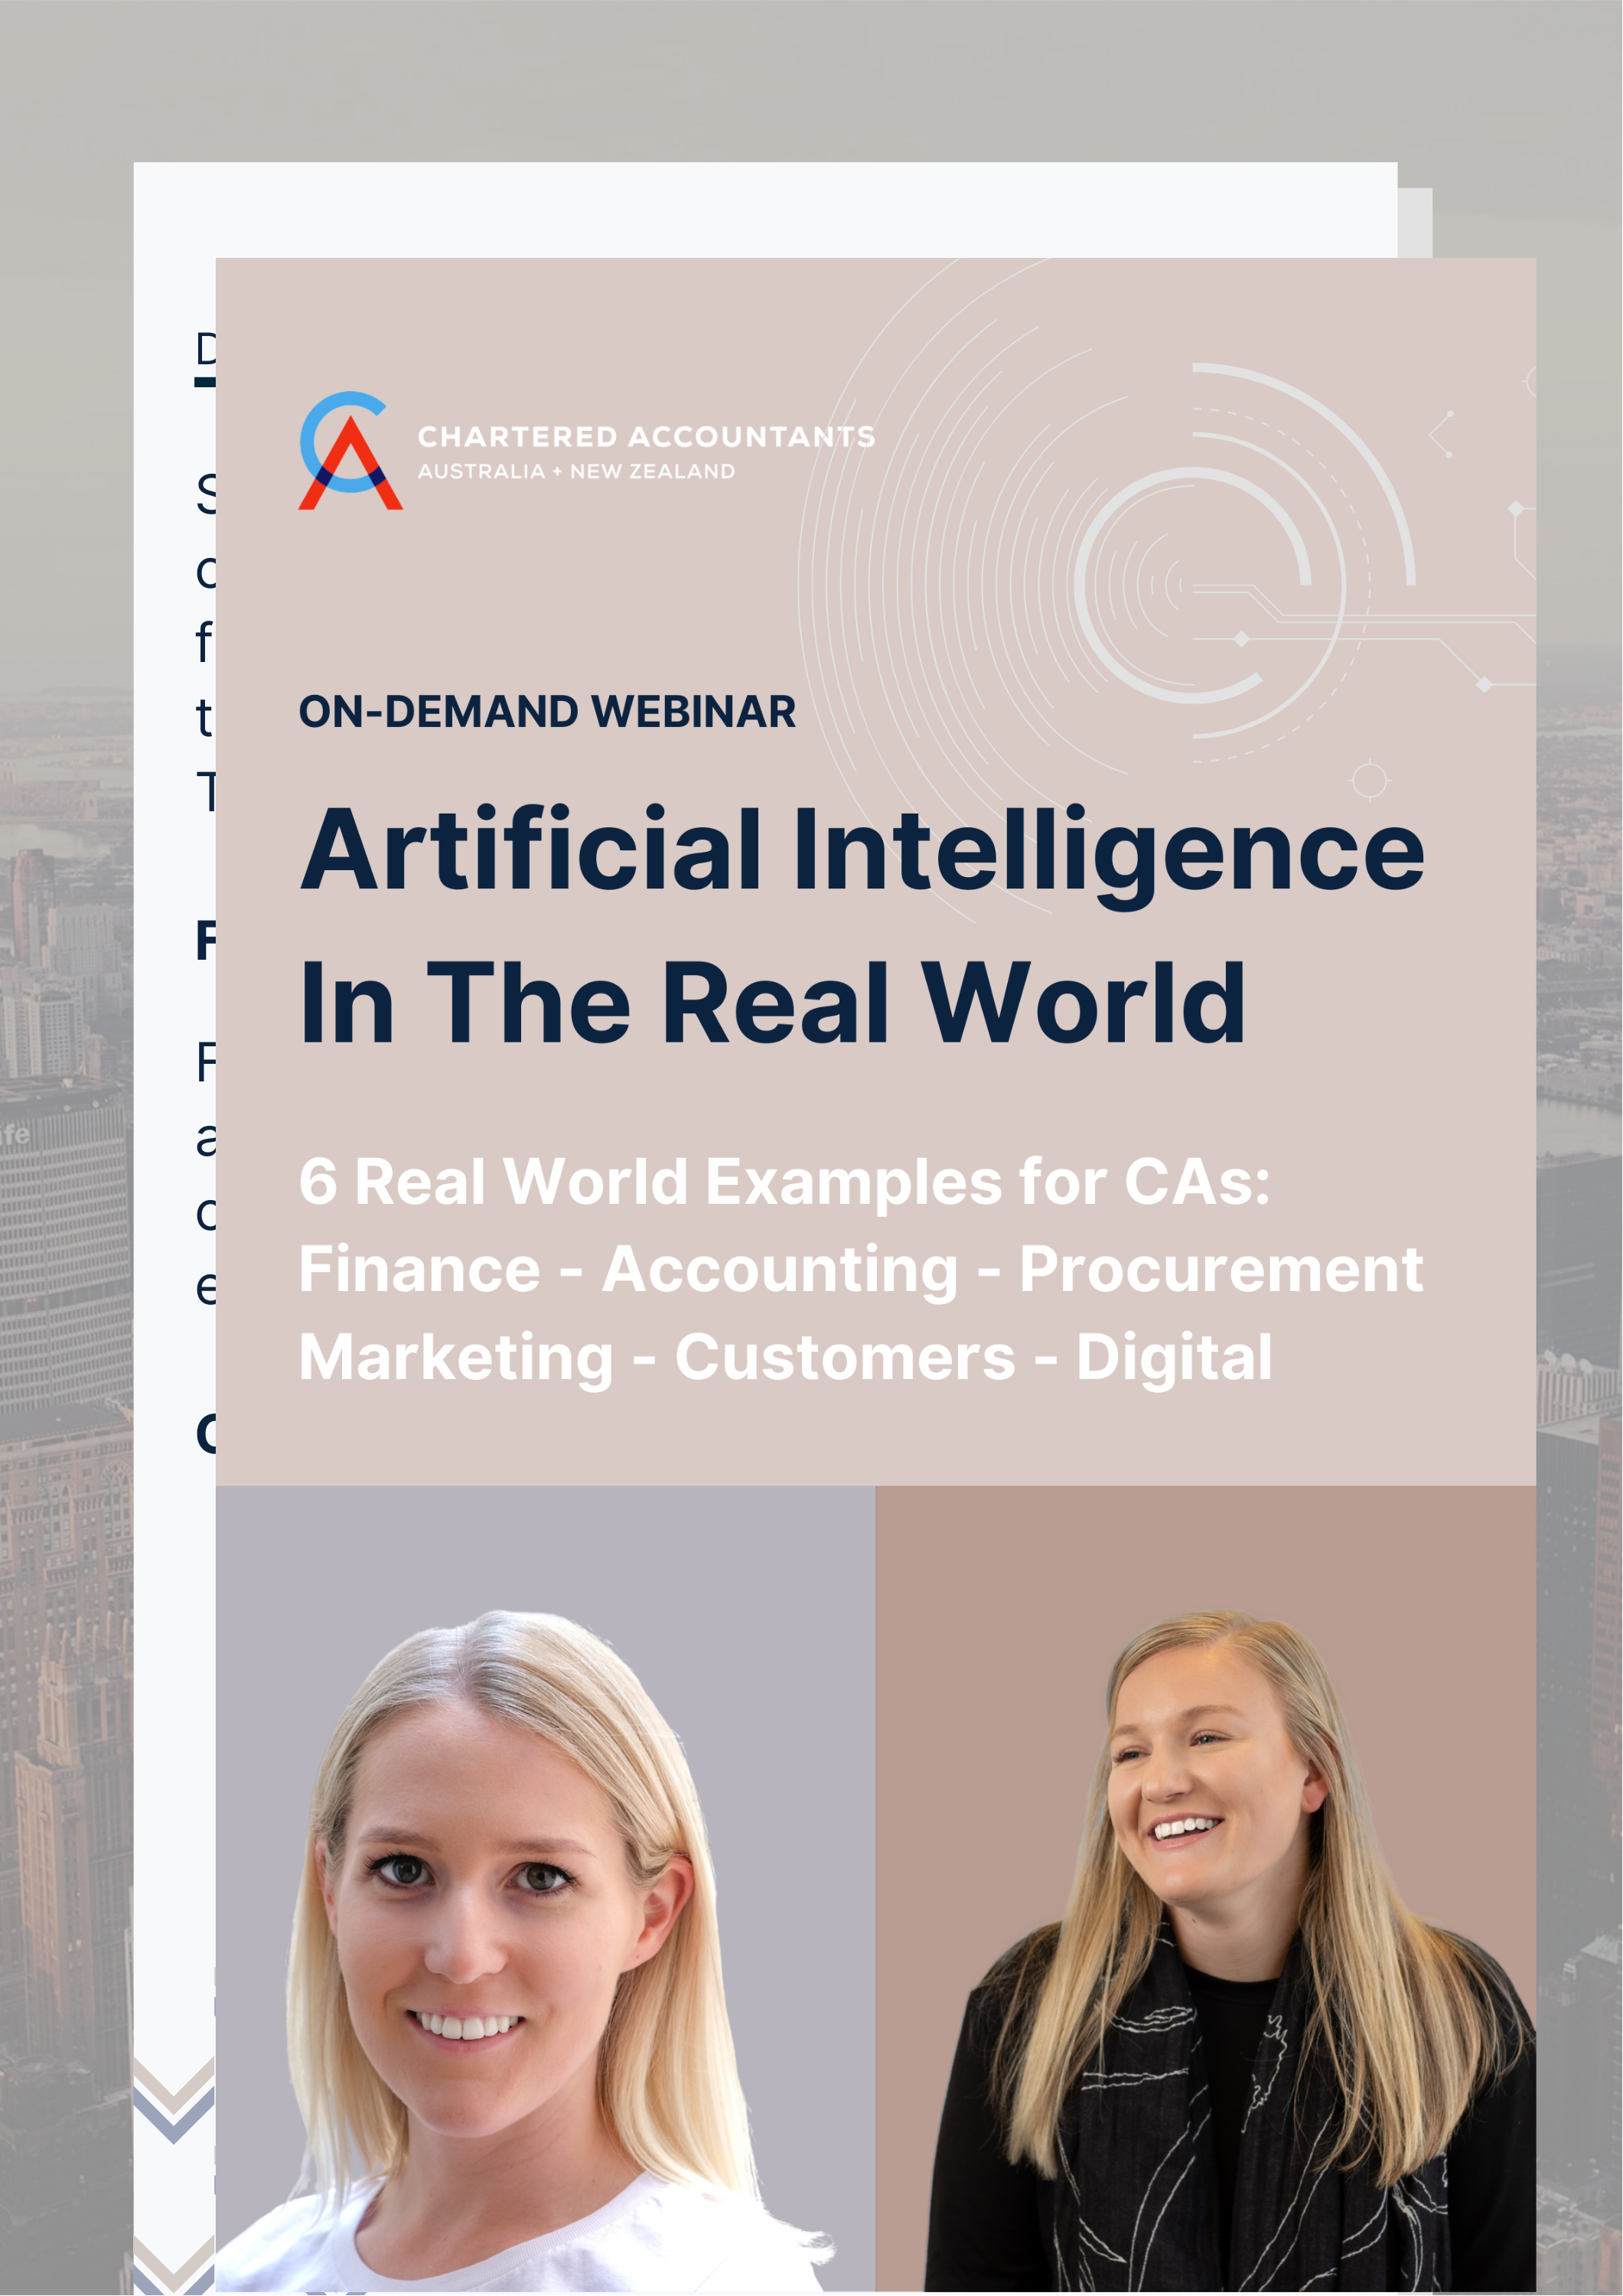 On-Demand Webinar: Artificial Intelligence In The Real World.